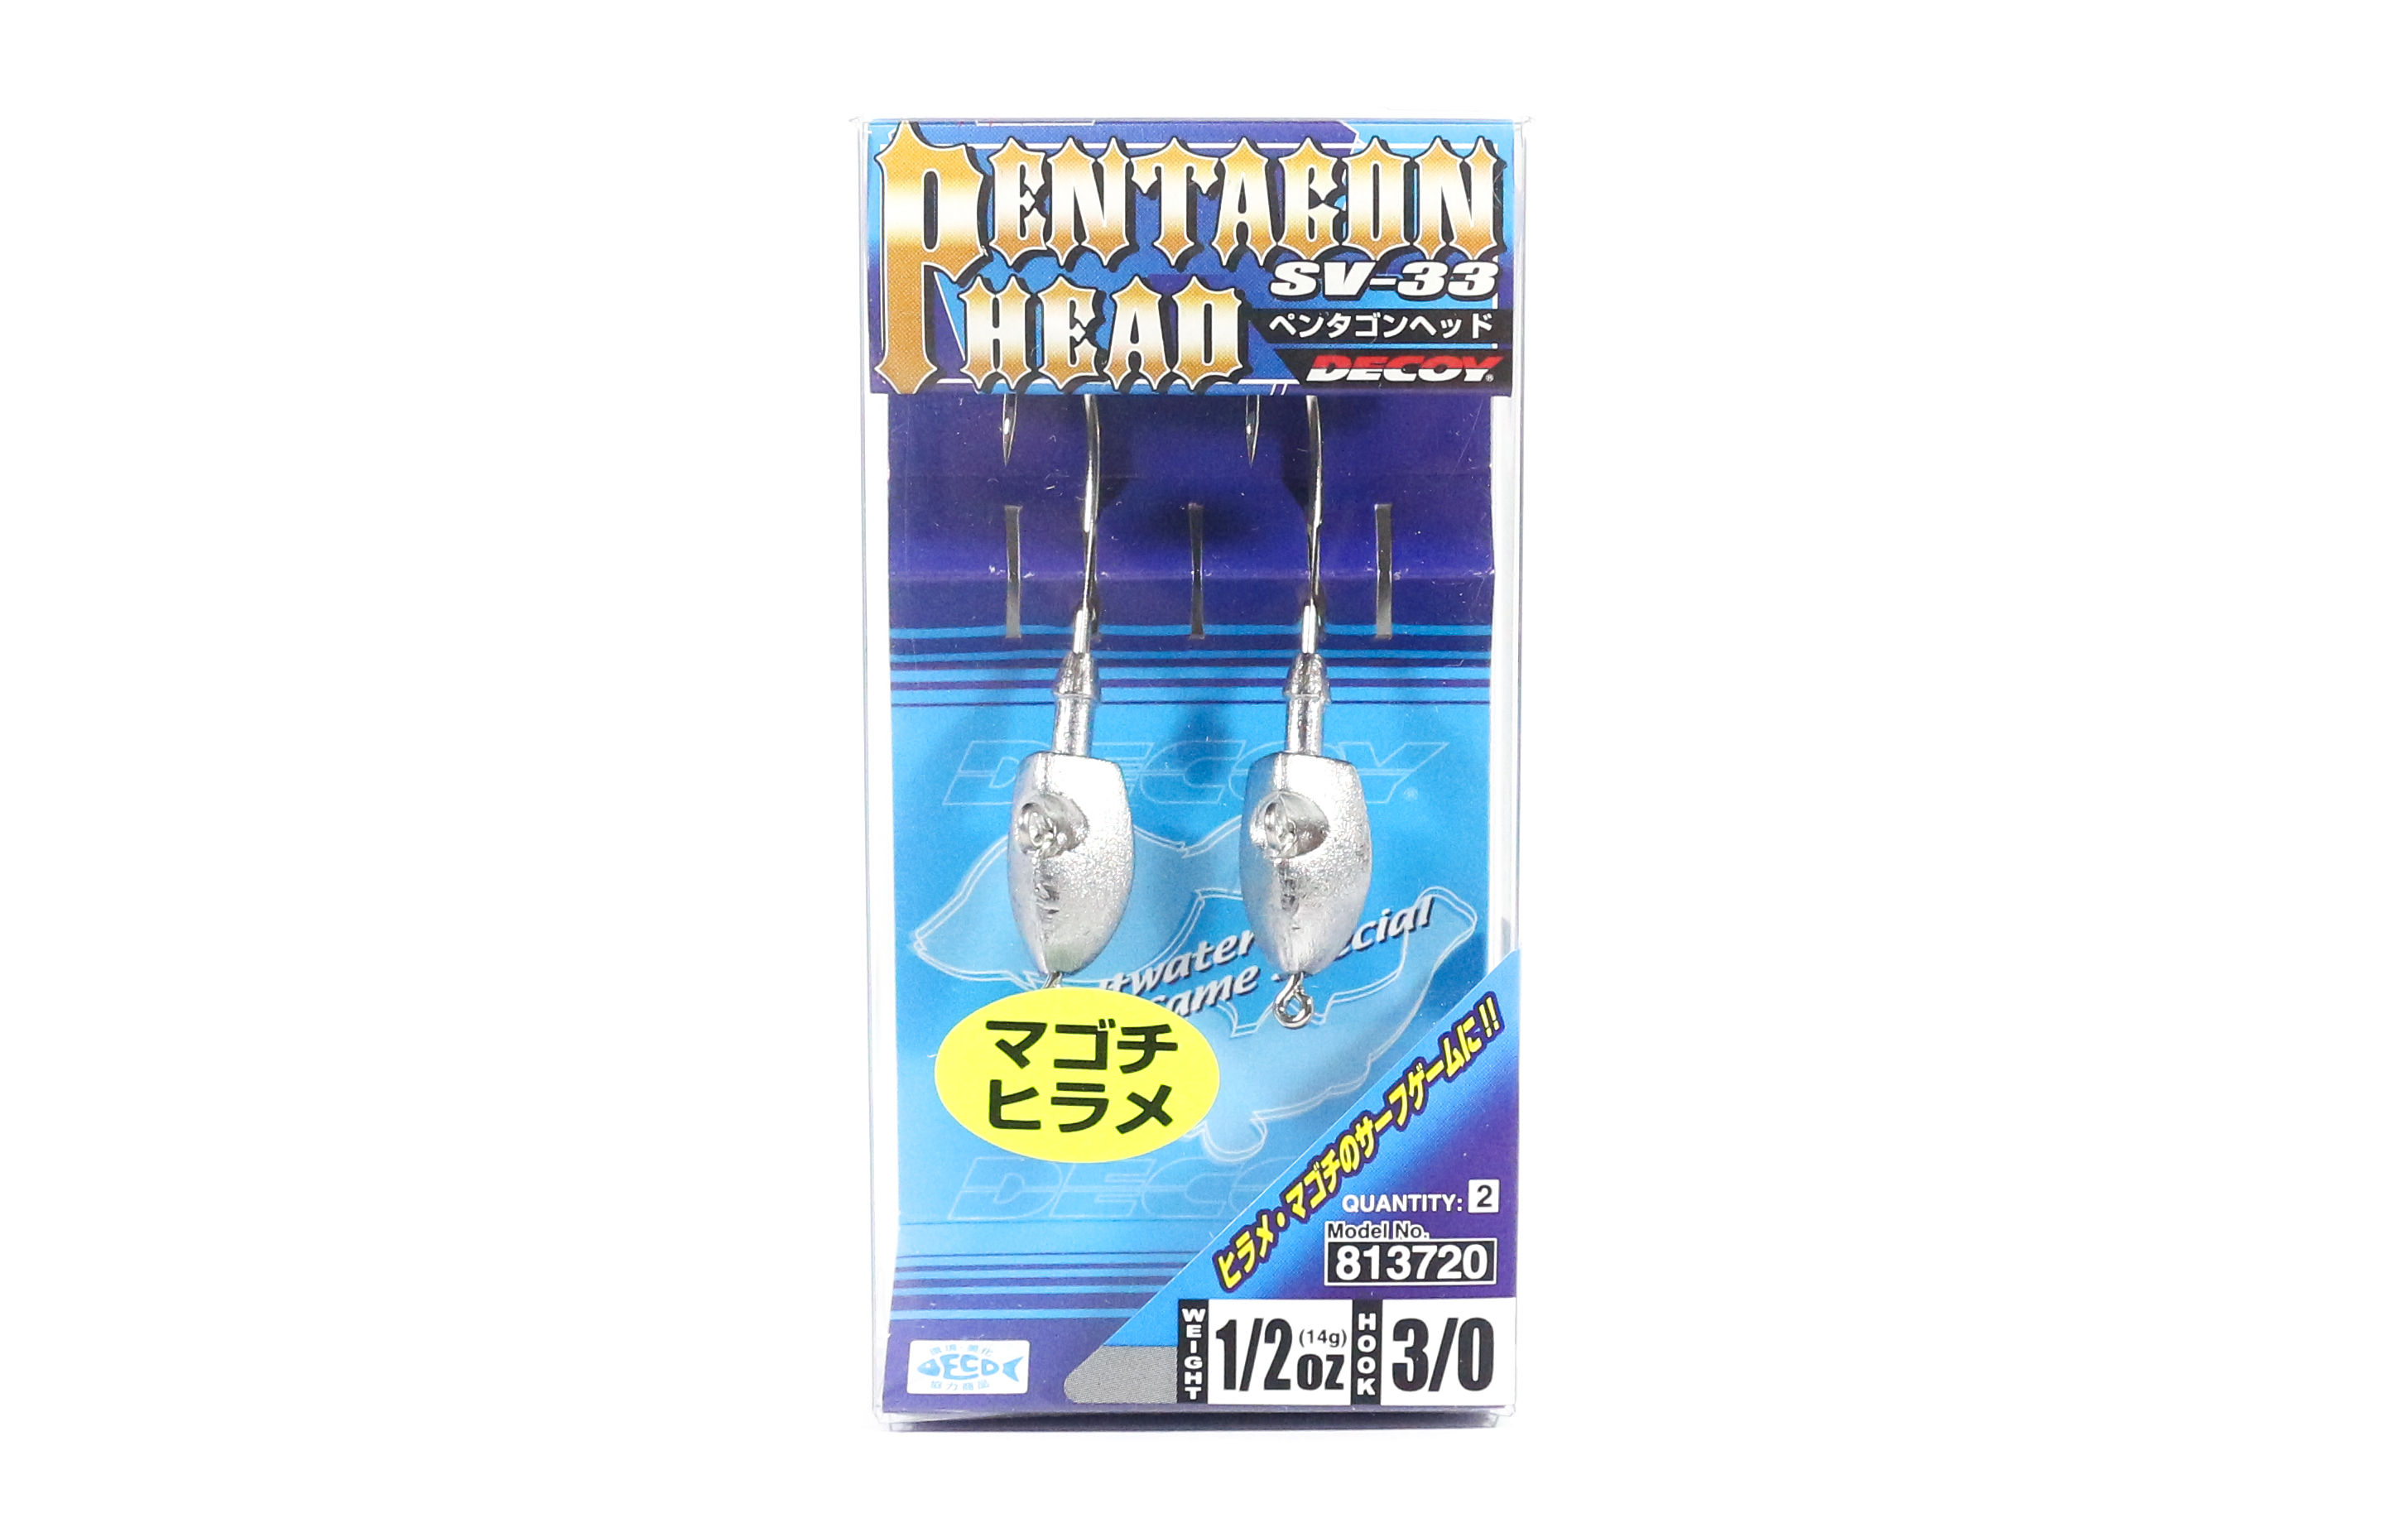 Decoy SV-33 Jig Head Pentagon Head size 3/0 , 1/2 oz (3720)